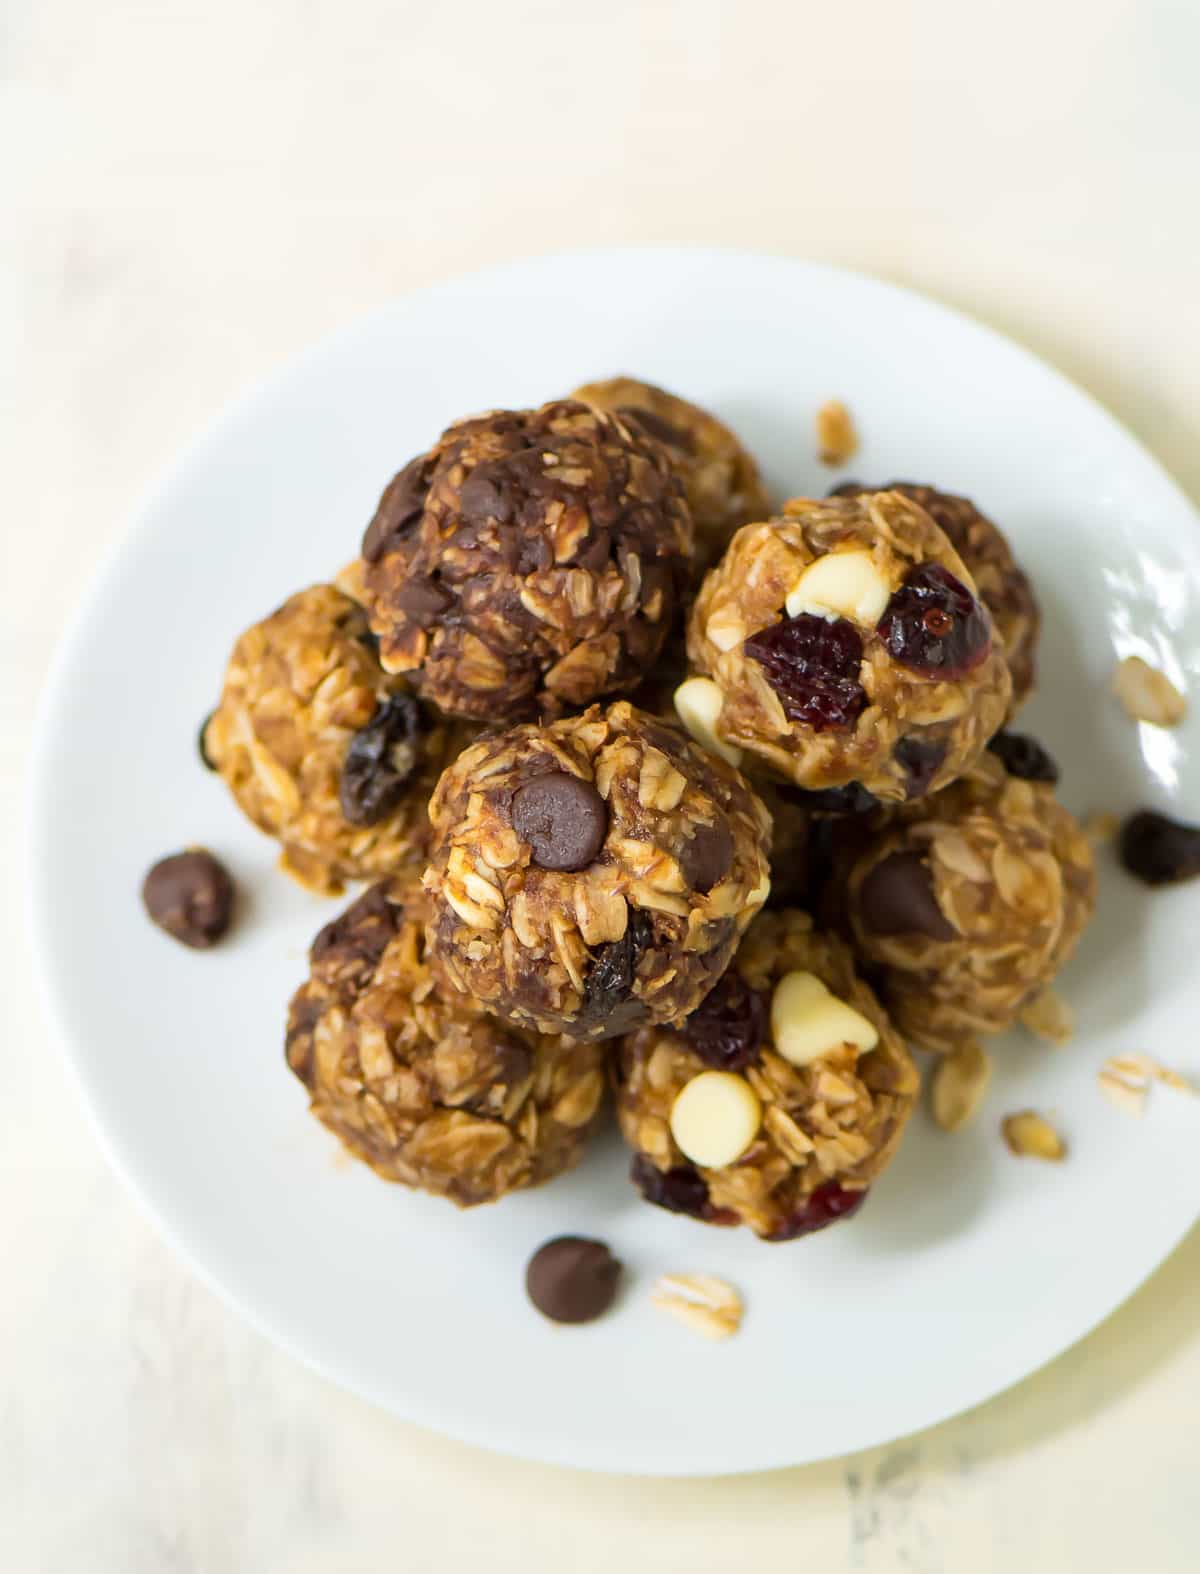 small white plate with a stack of no bake energy balls with chocolate chips and dried fruits